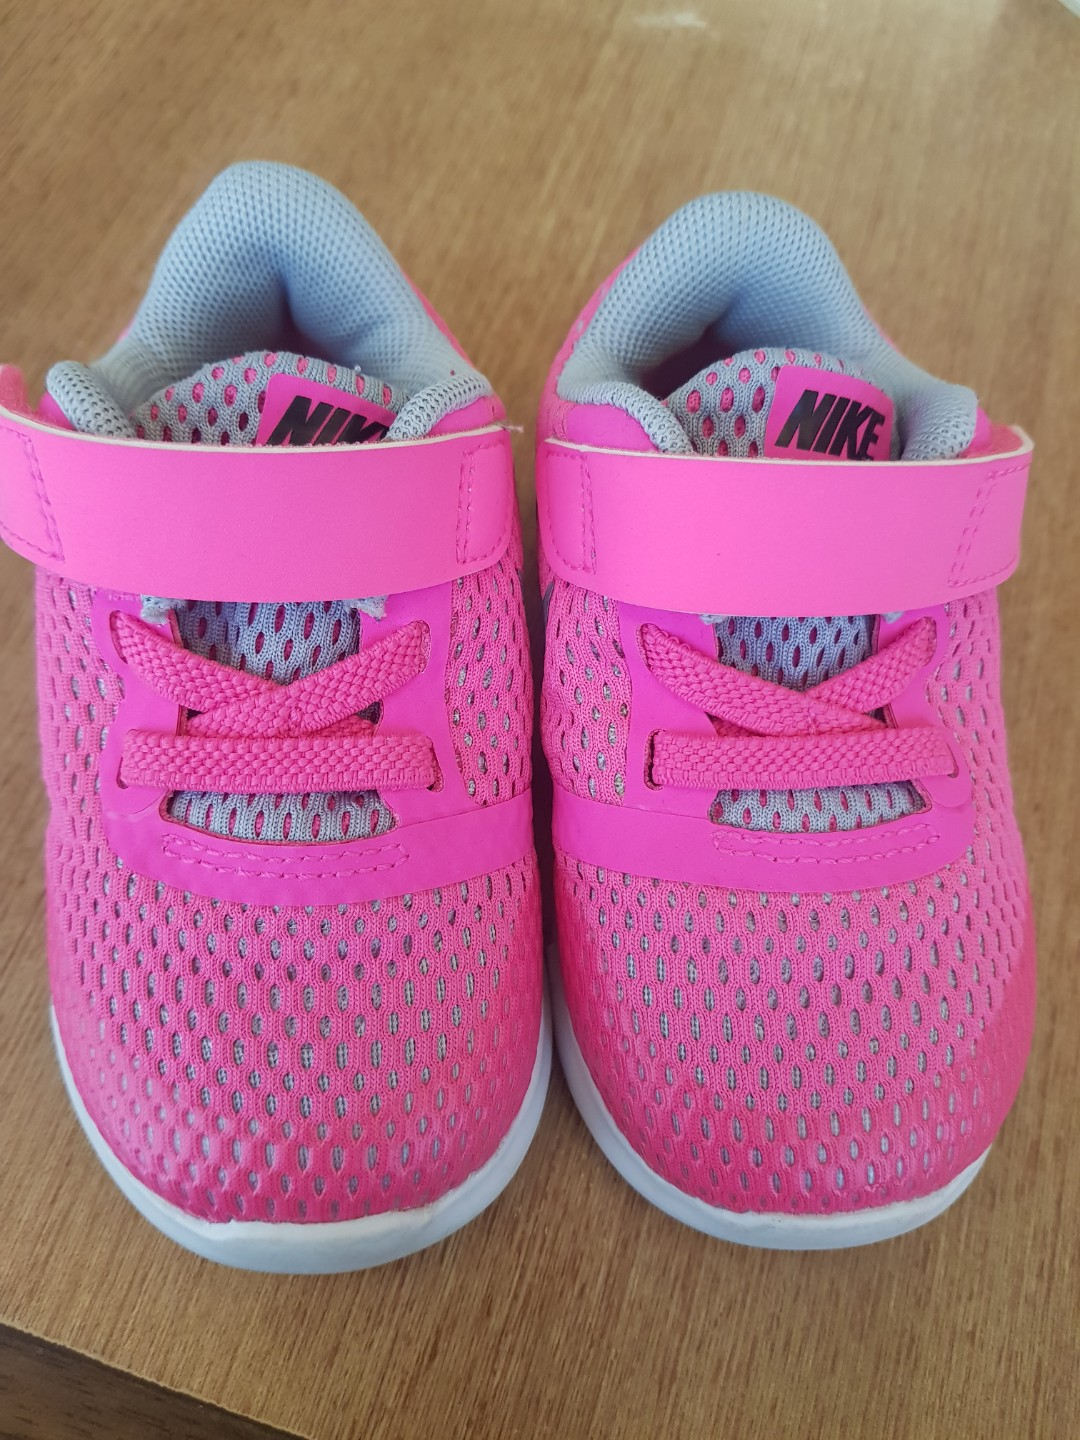 0a3e2119a5b2 Preloved Nike Free Run for Baby Toddler Hot Pink